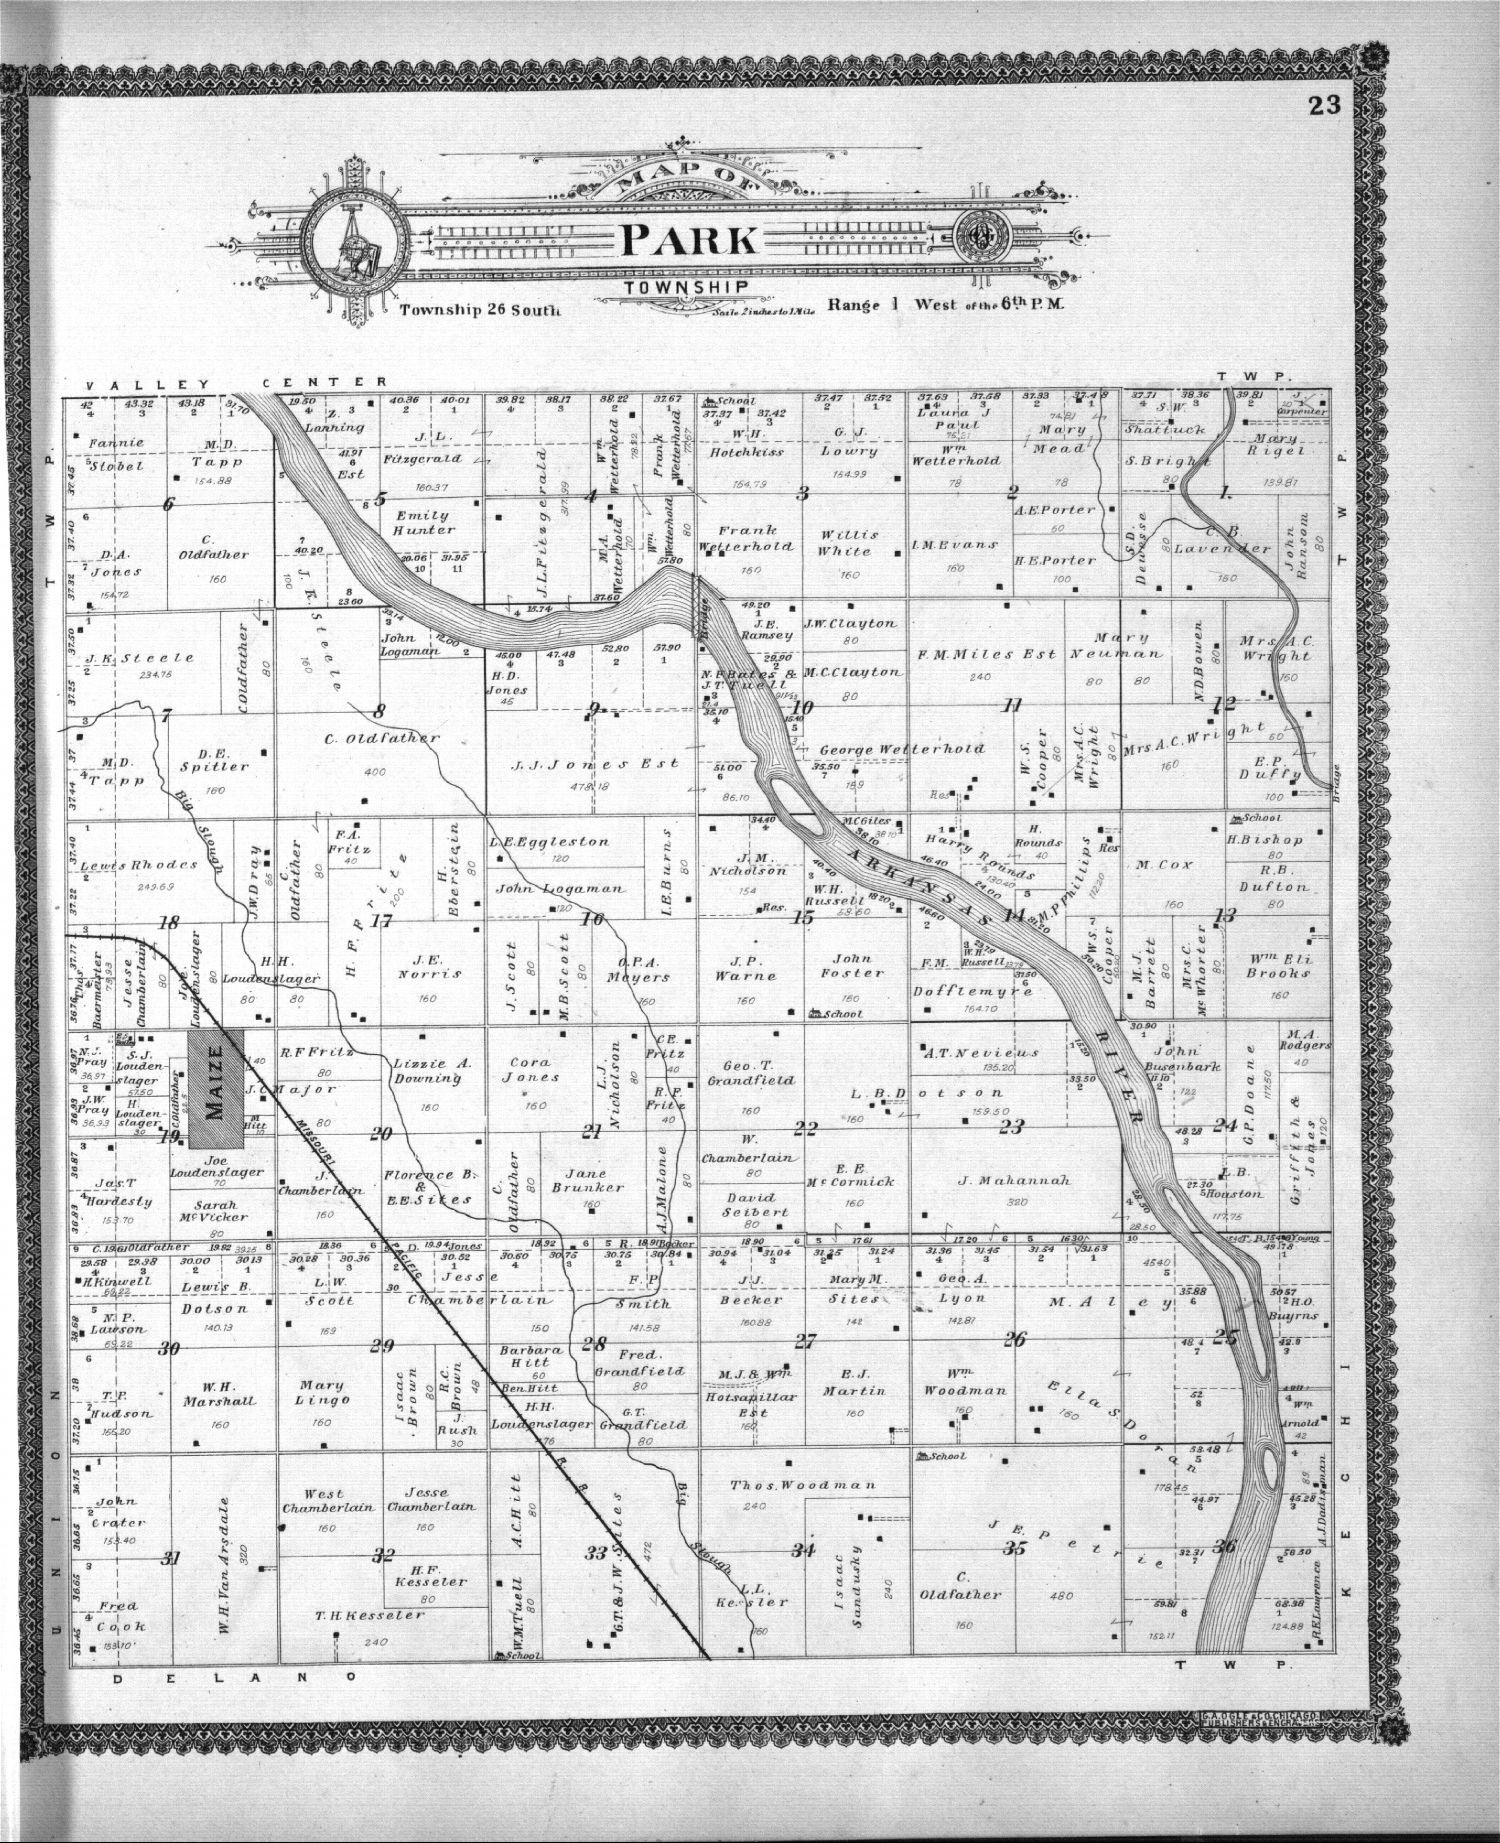 Standard atlas of Sedgwick County, Kansas - 23